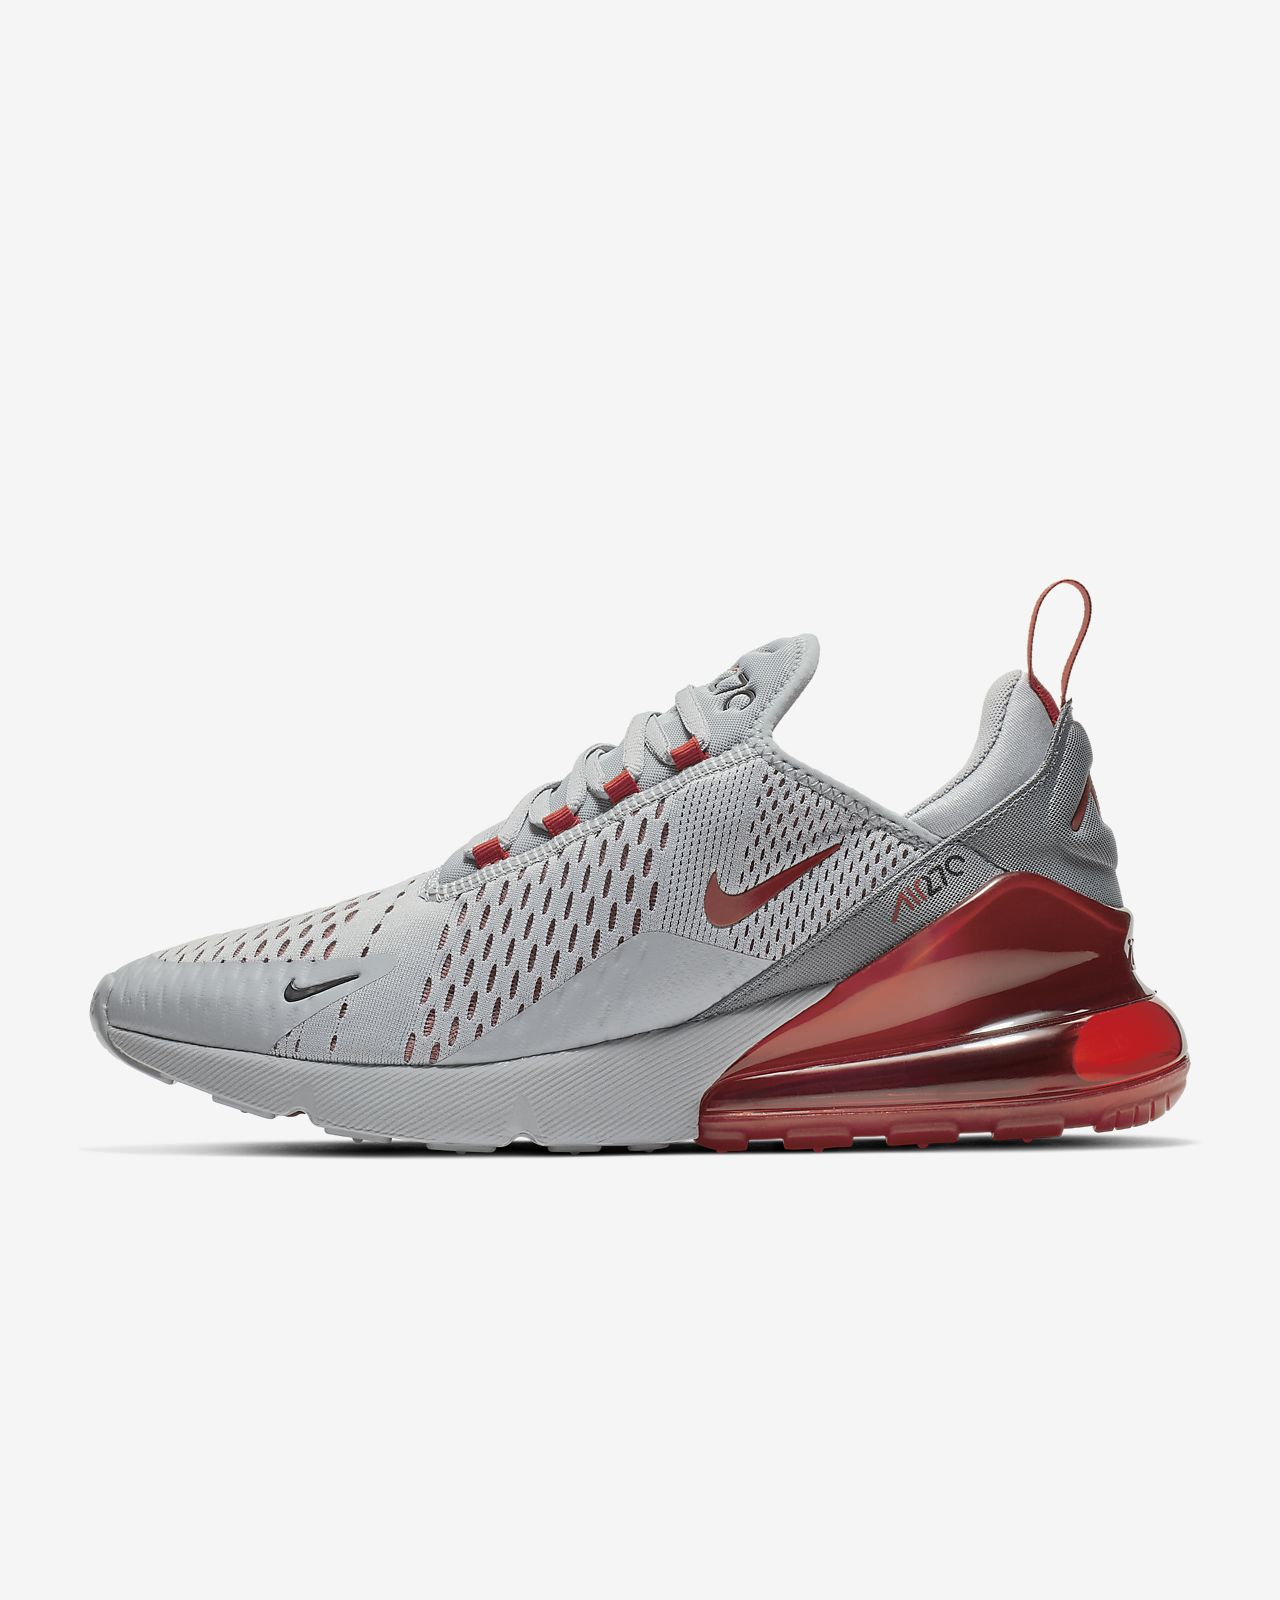 meet 13114 92fcc Men s Shoe. Nike Air Max 270